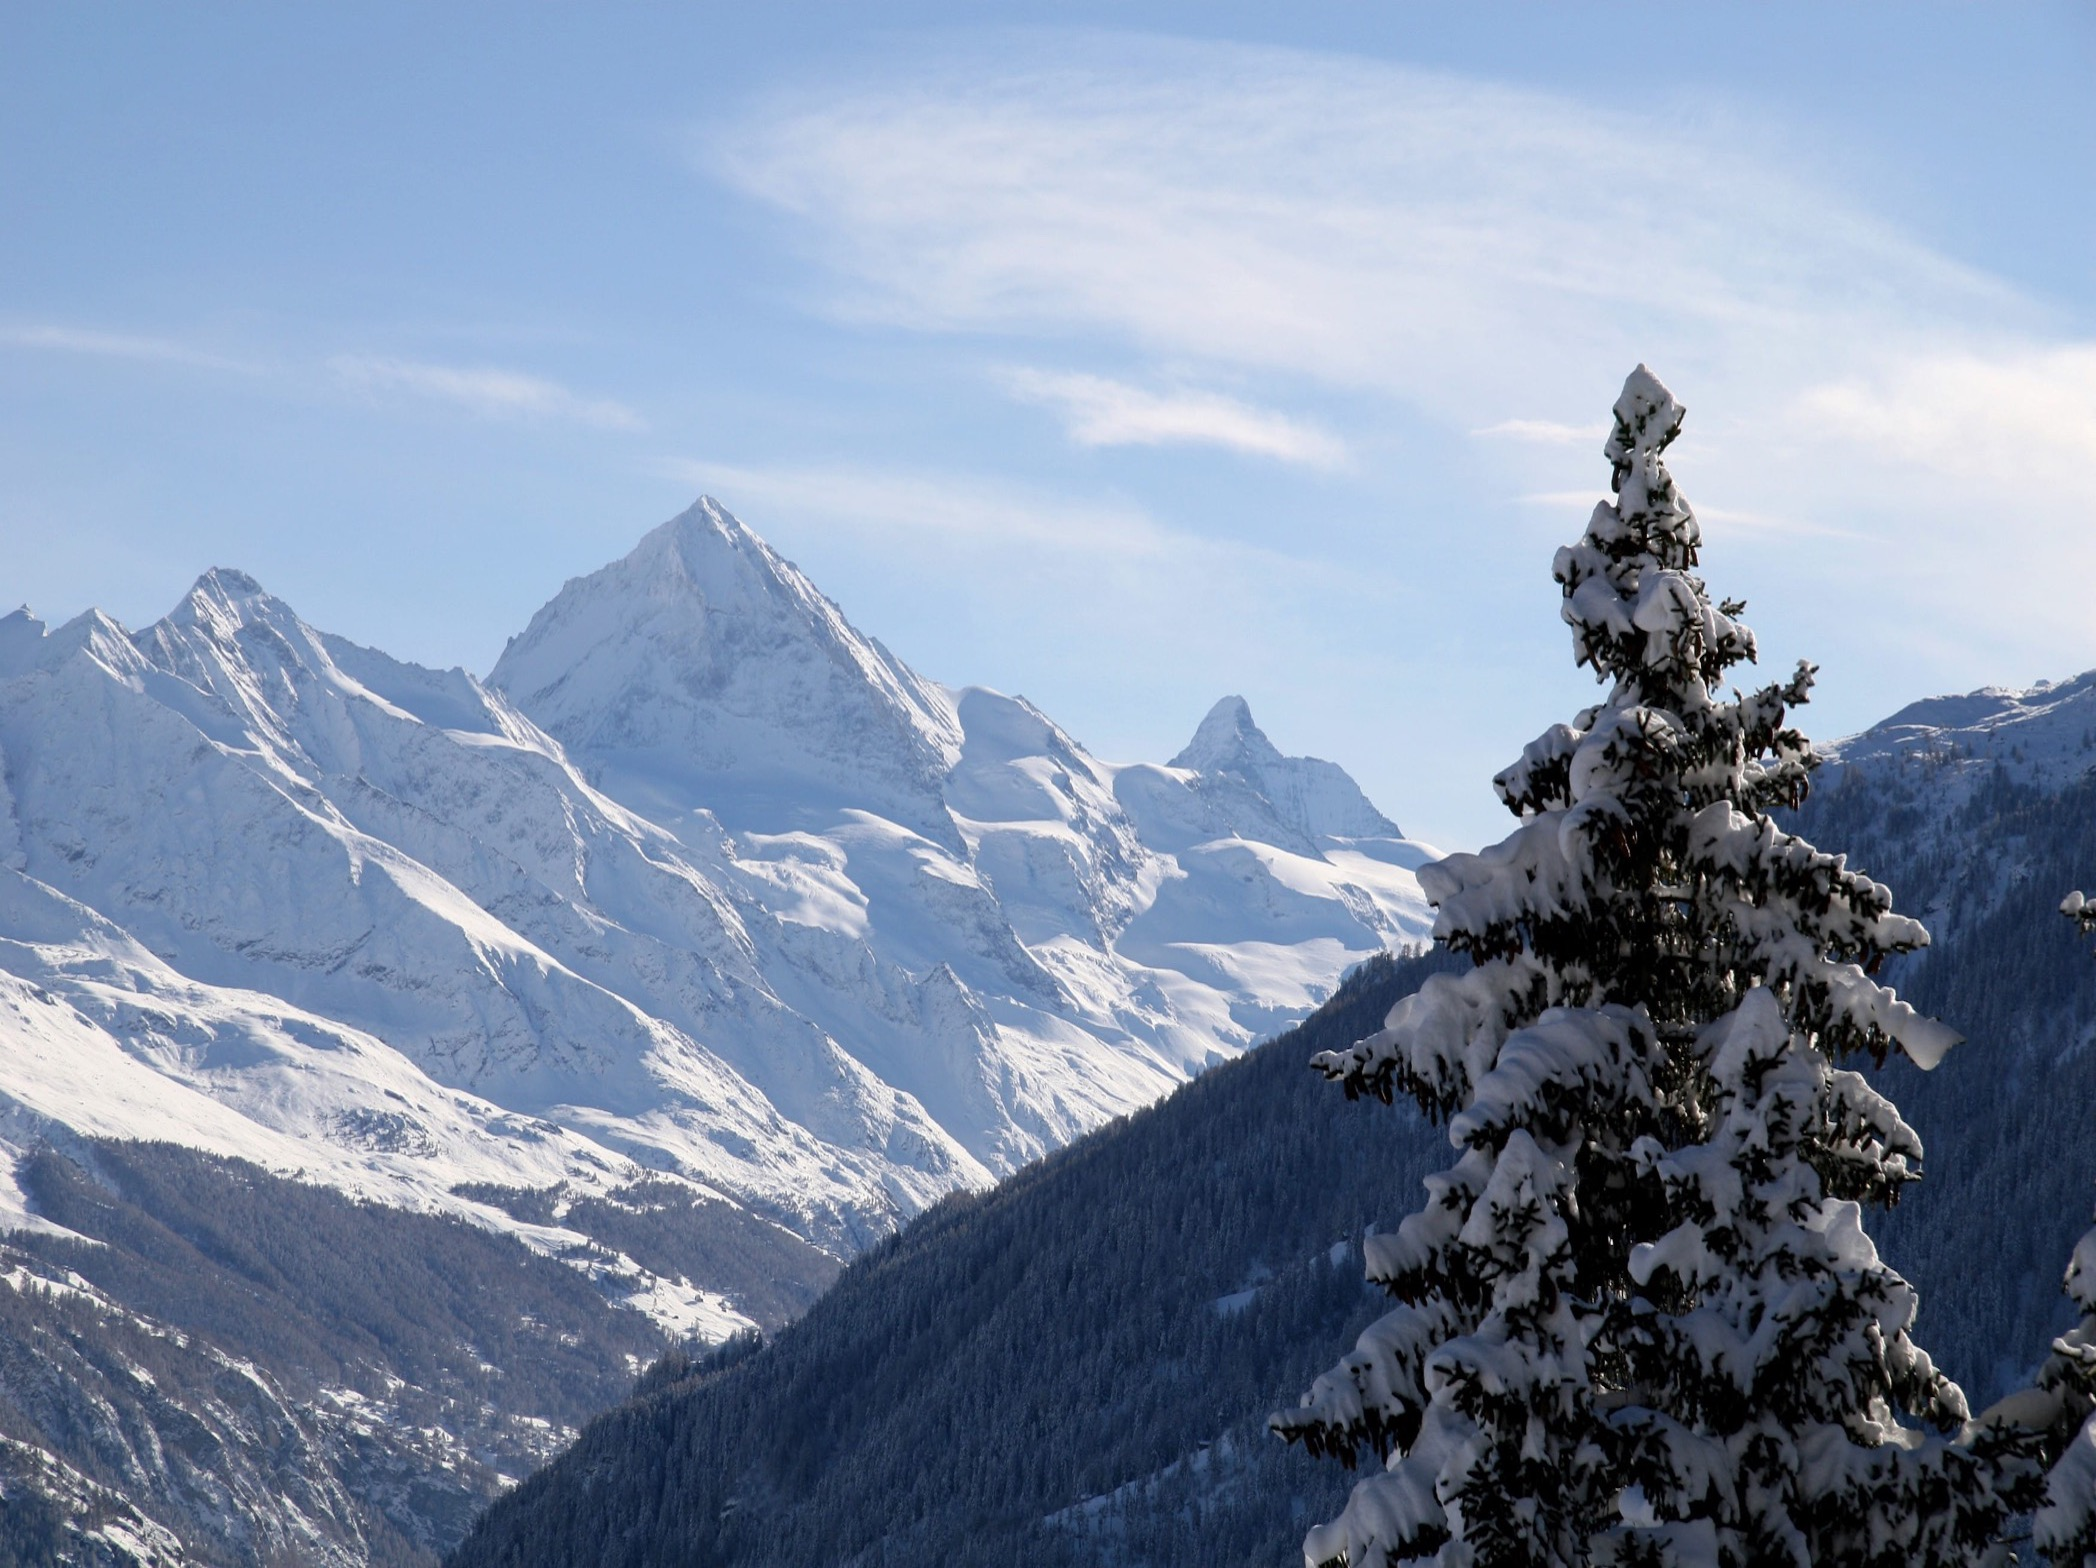 Holiday Home with breathtaking views of the majestic Dent Blanche and the famous Matterhorn.